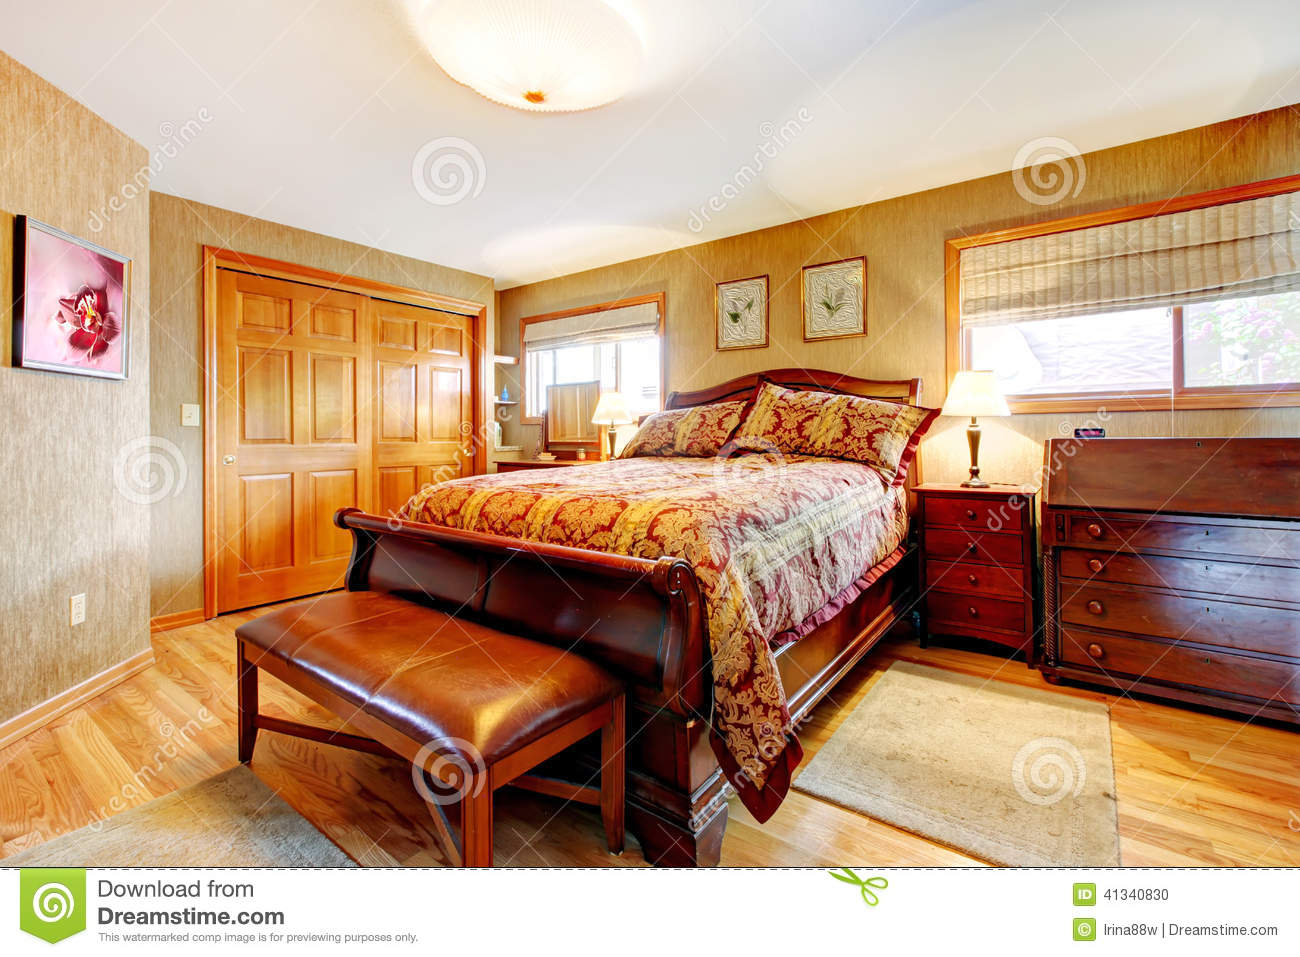 Quarto rico com grupo da mob lia antiga foto de stock for Mobilia bedroom